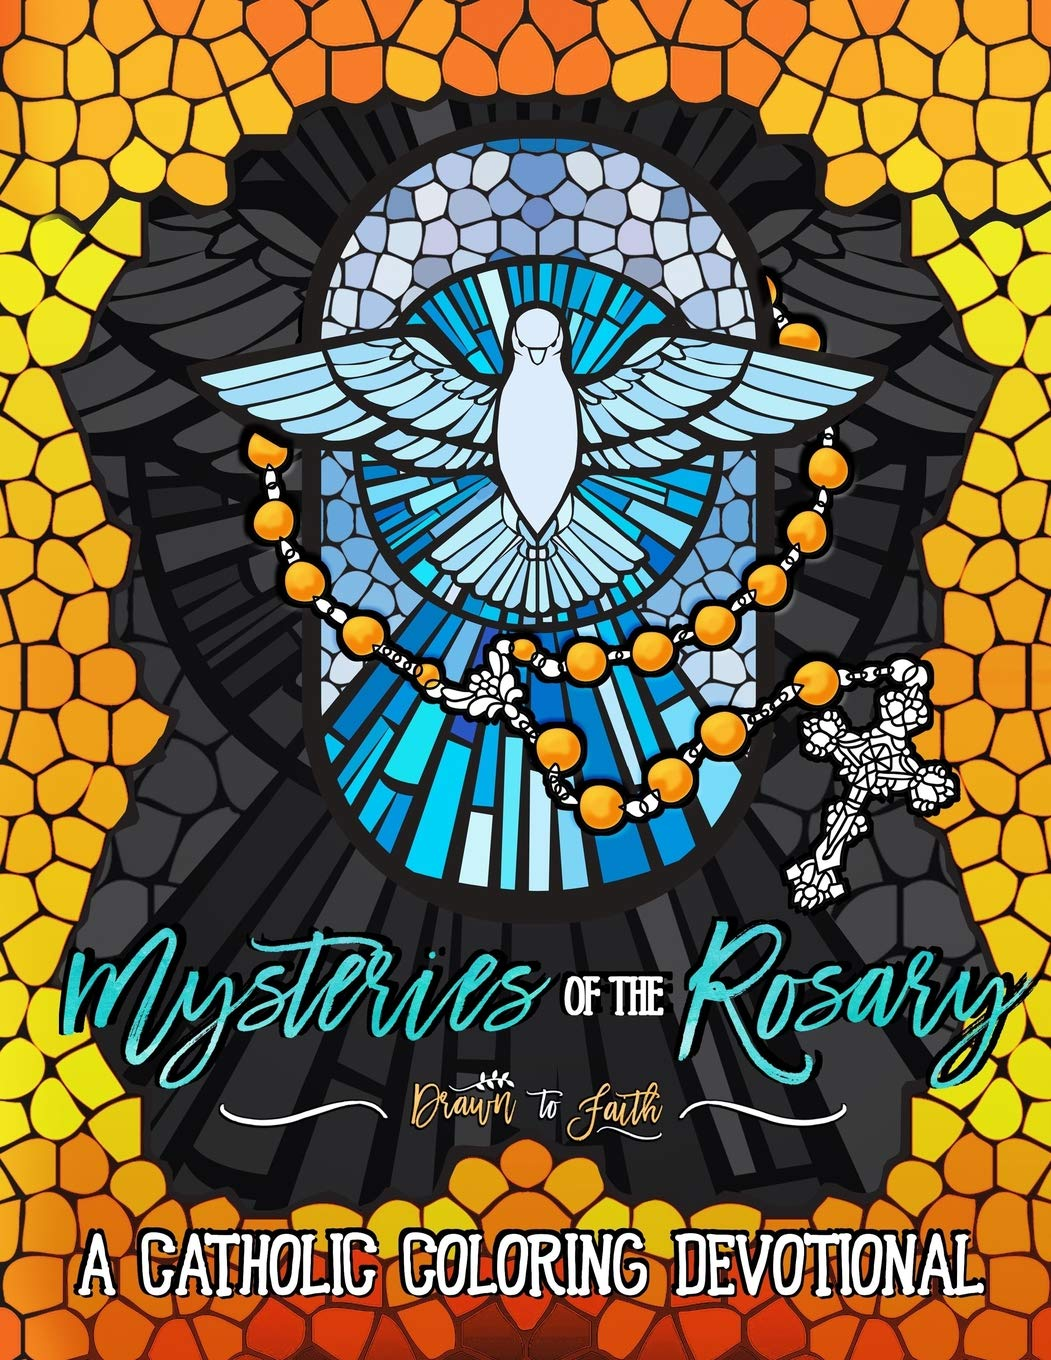 Mysteries of the Rosary: A Catholic Coloring Devotional: Catholic Bible Verse Coloring Book for Adults & Teens